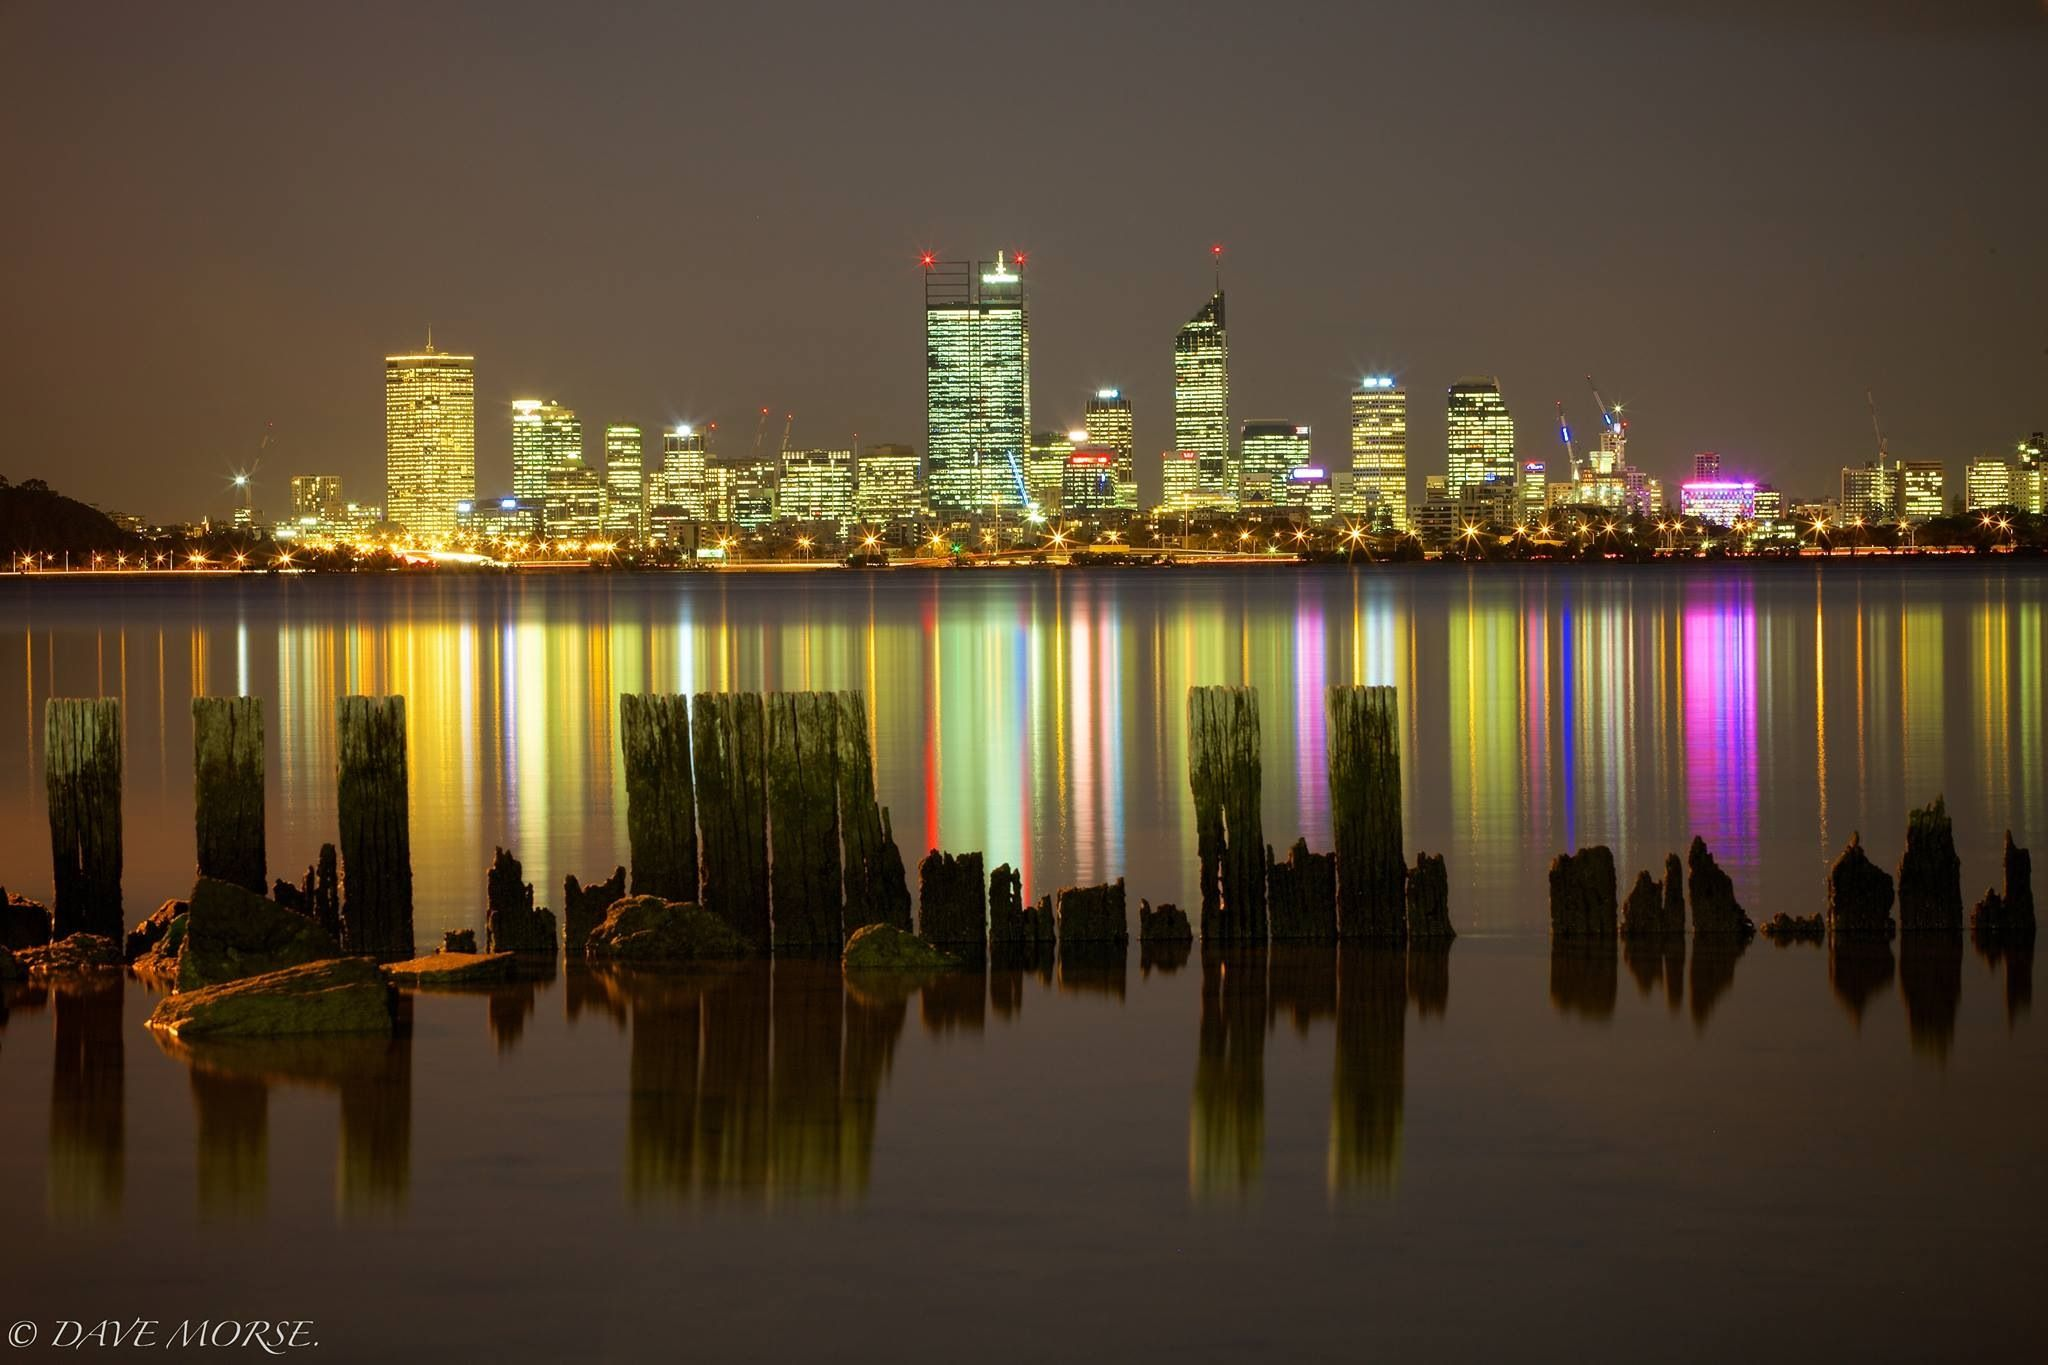 Lighting Stores Perth Wa City Lights Of Perth Western Australia Dave Morse Beautiful